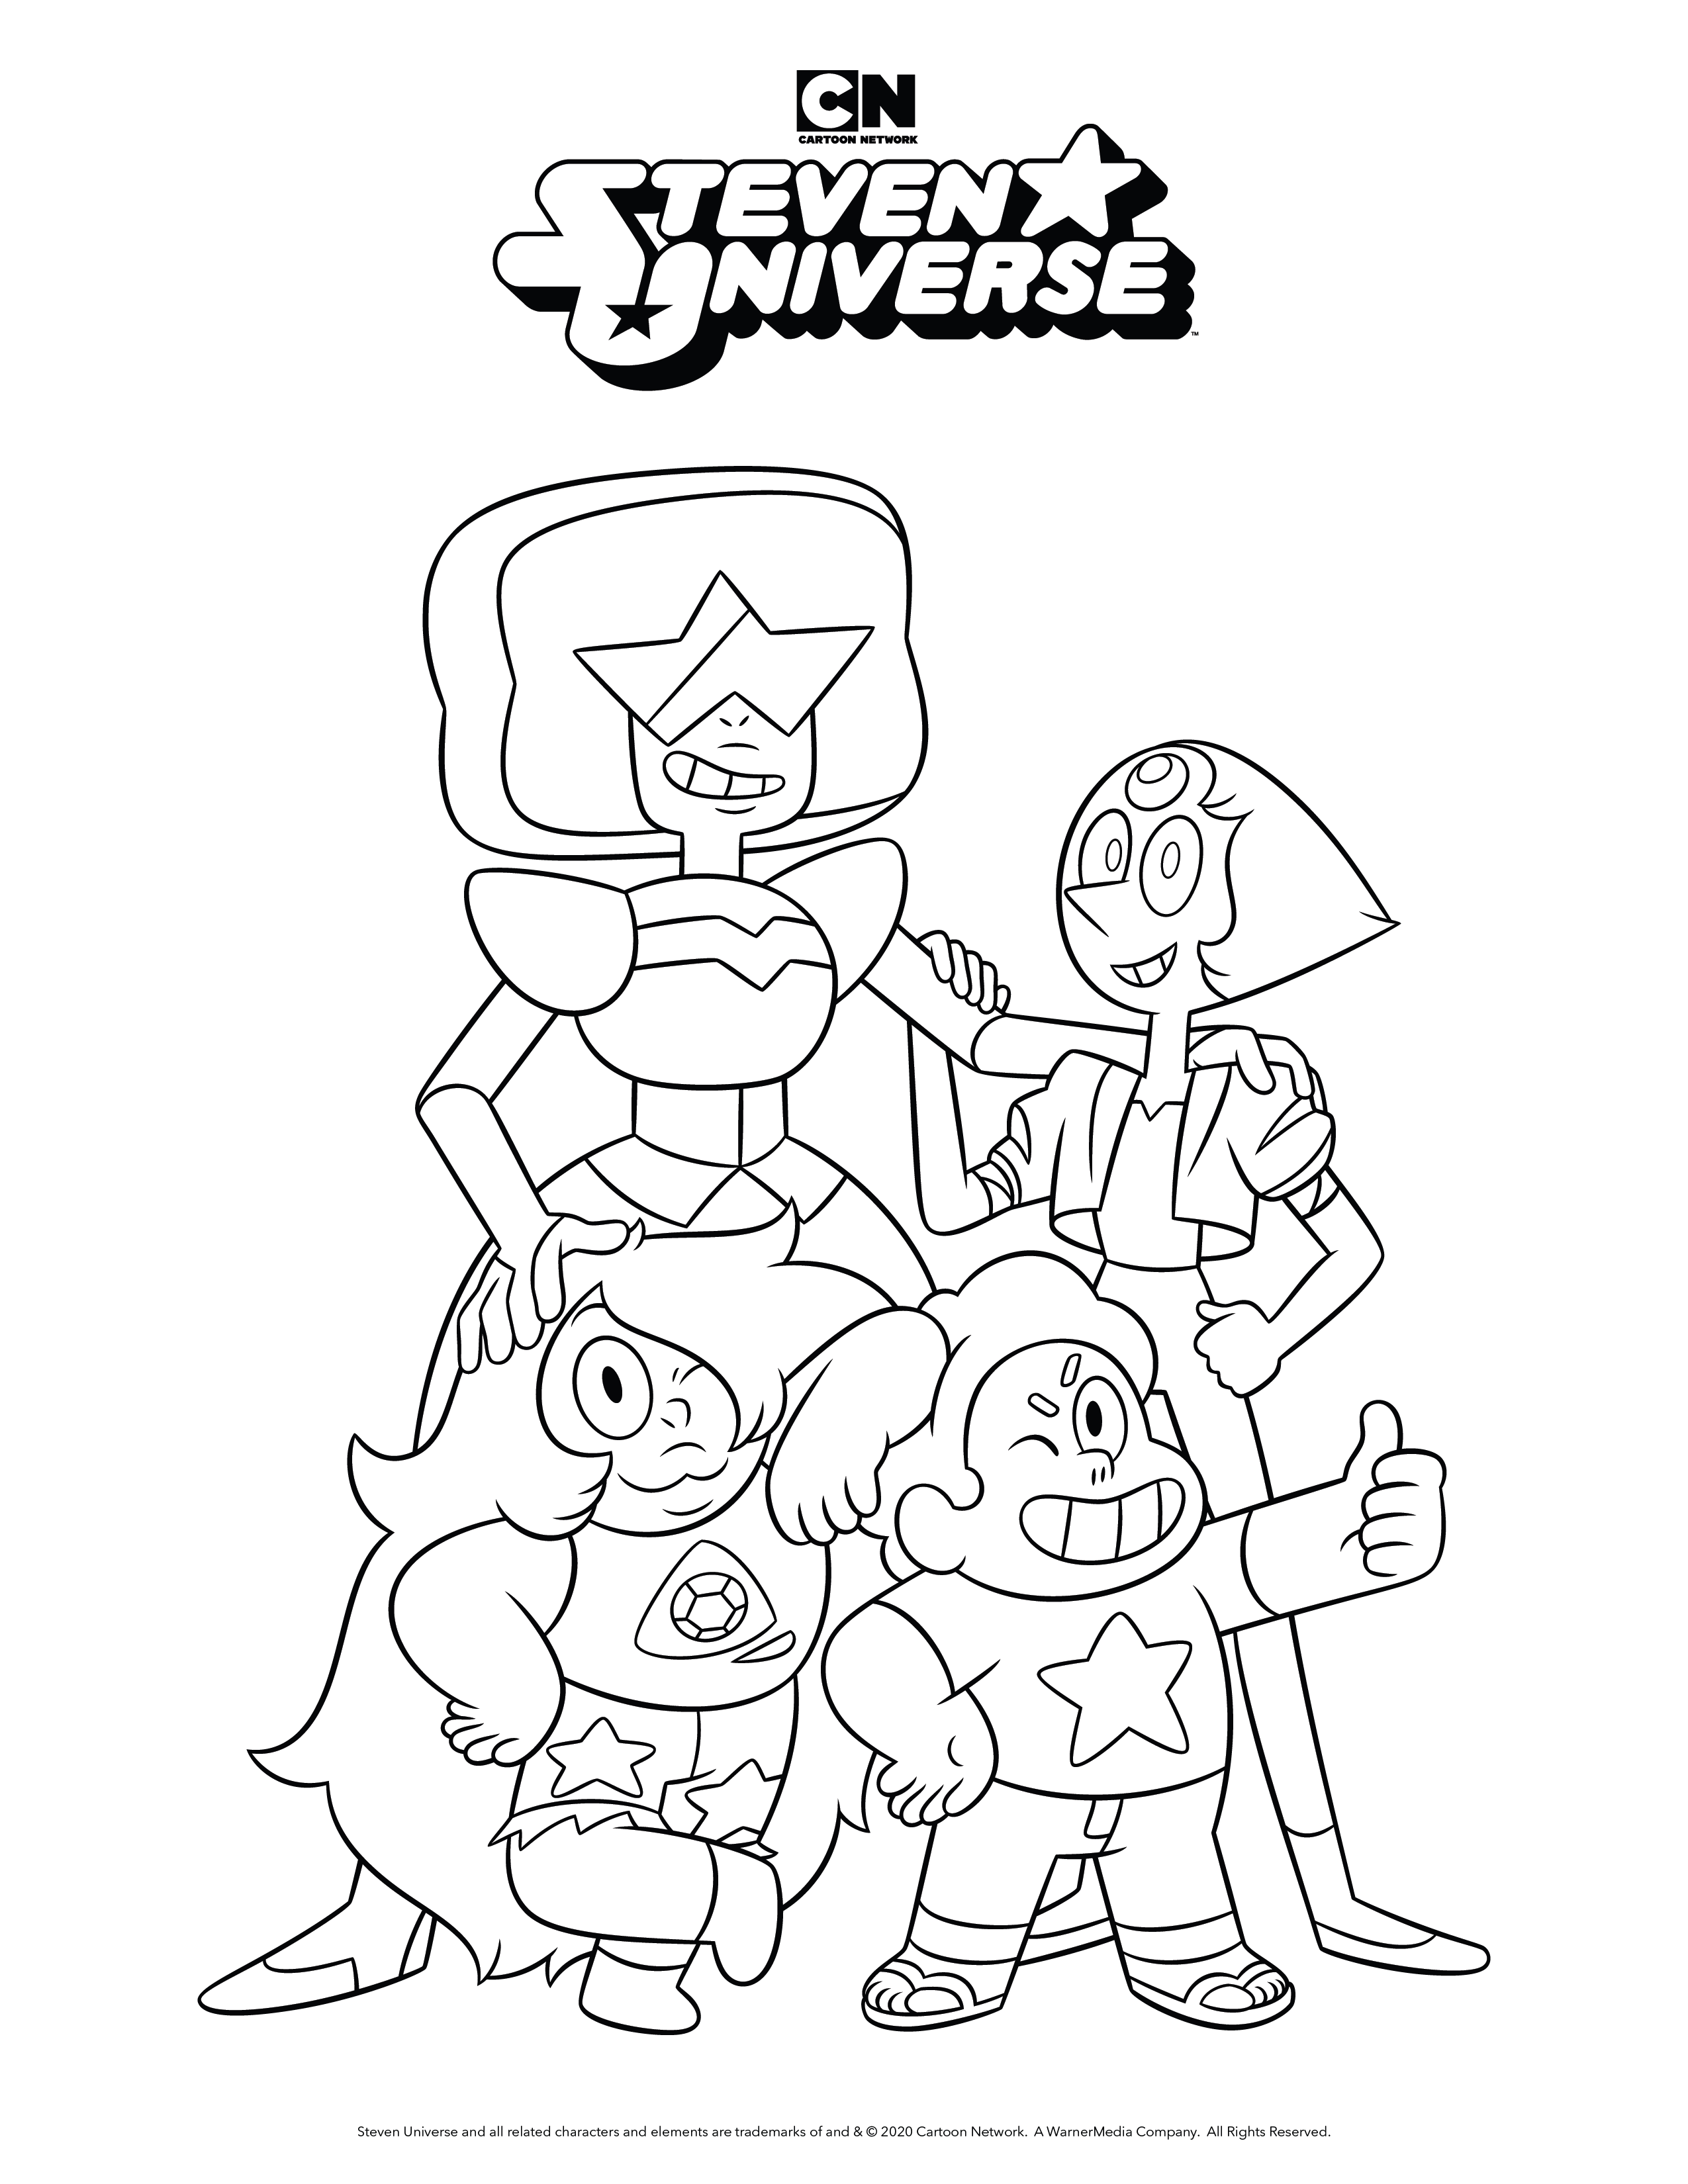 21++ Cartoon network characters coloring pages ideas